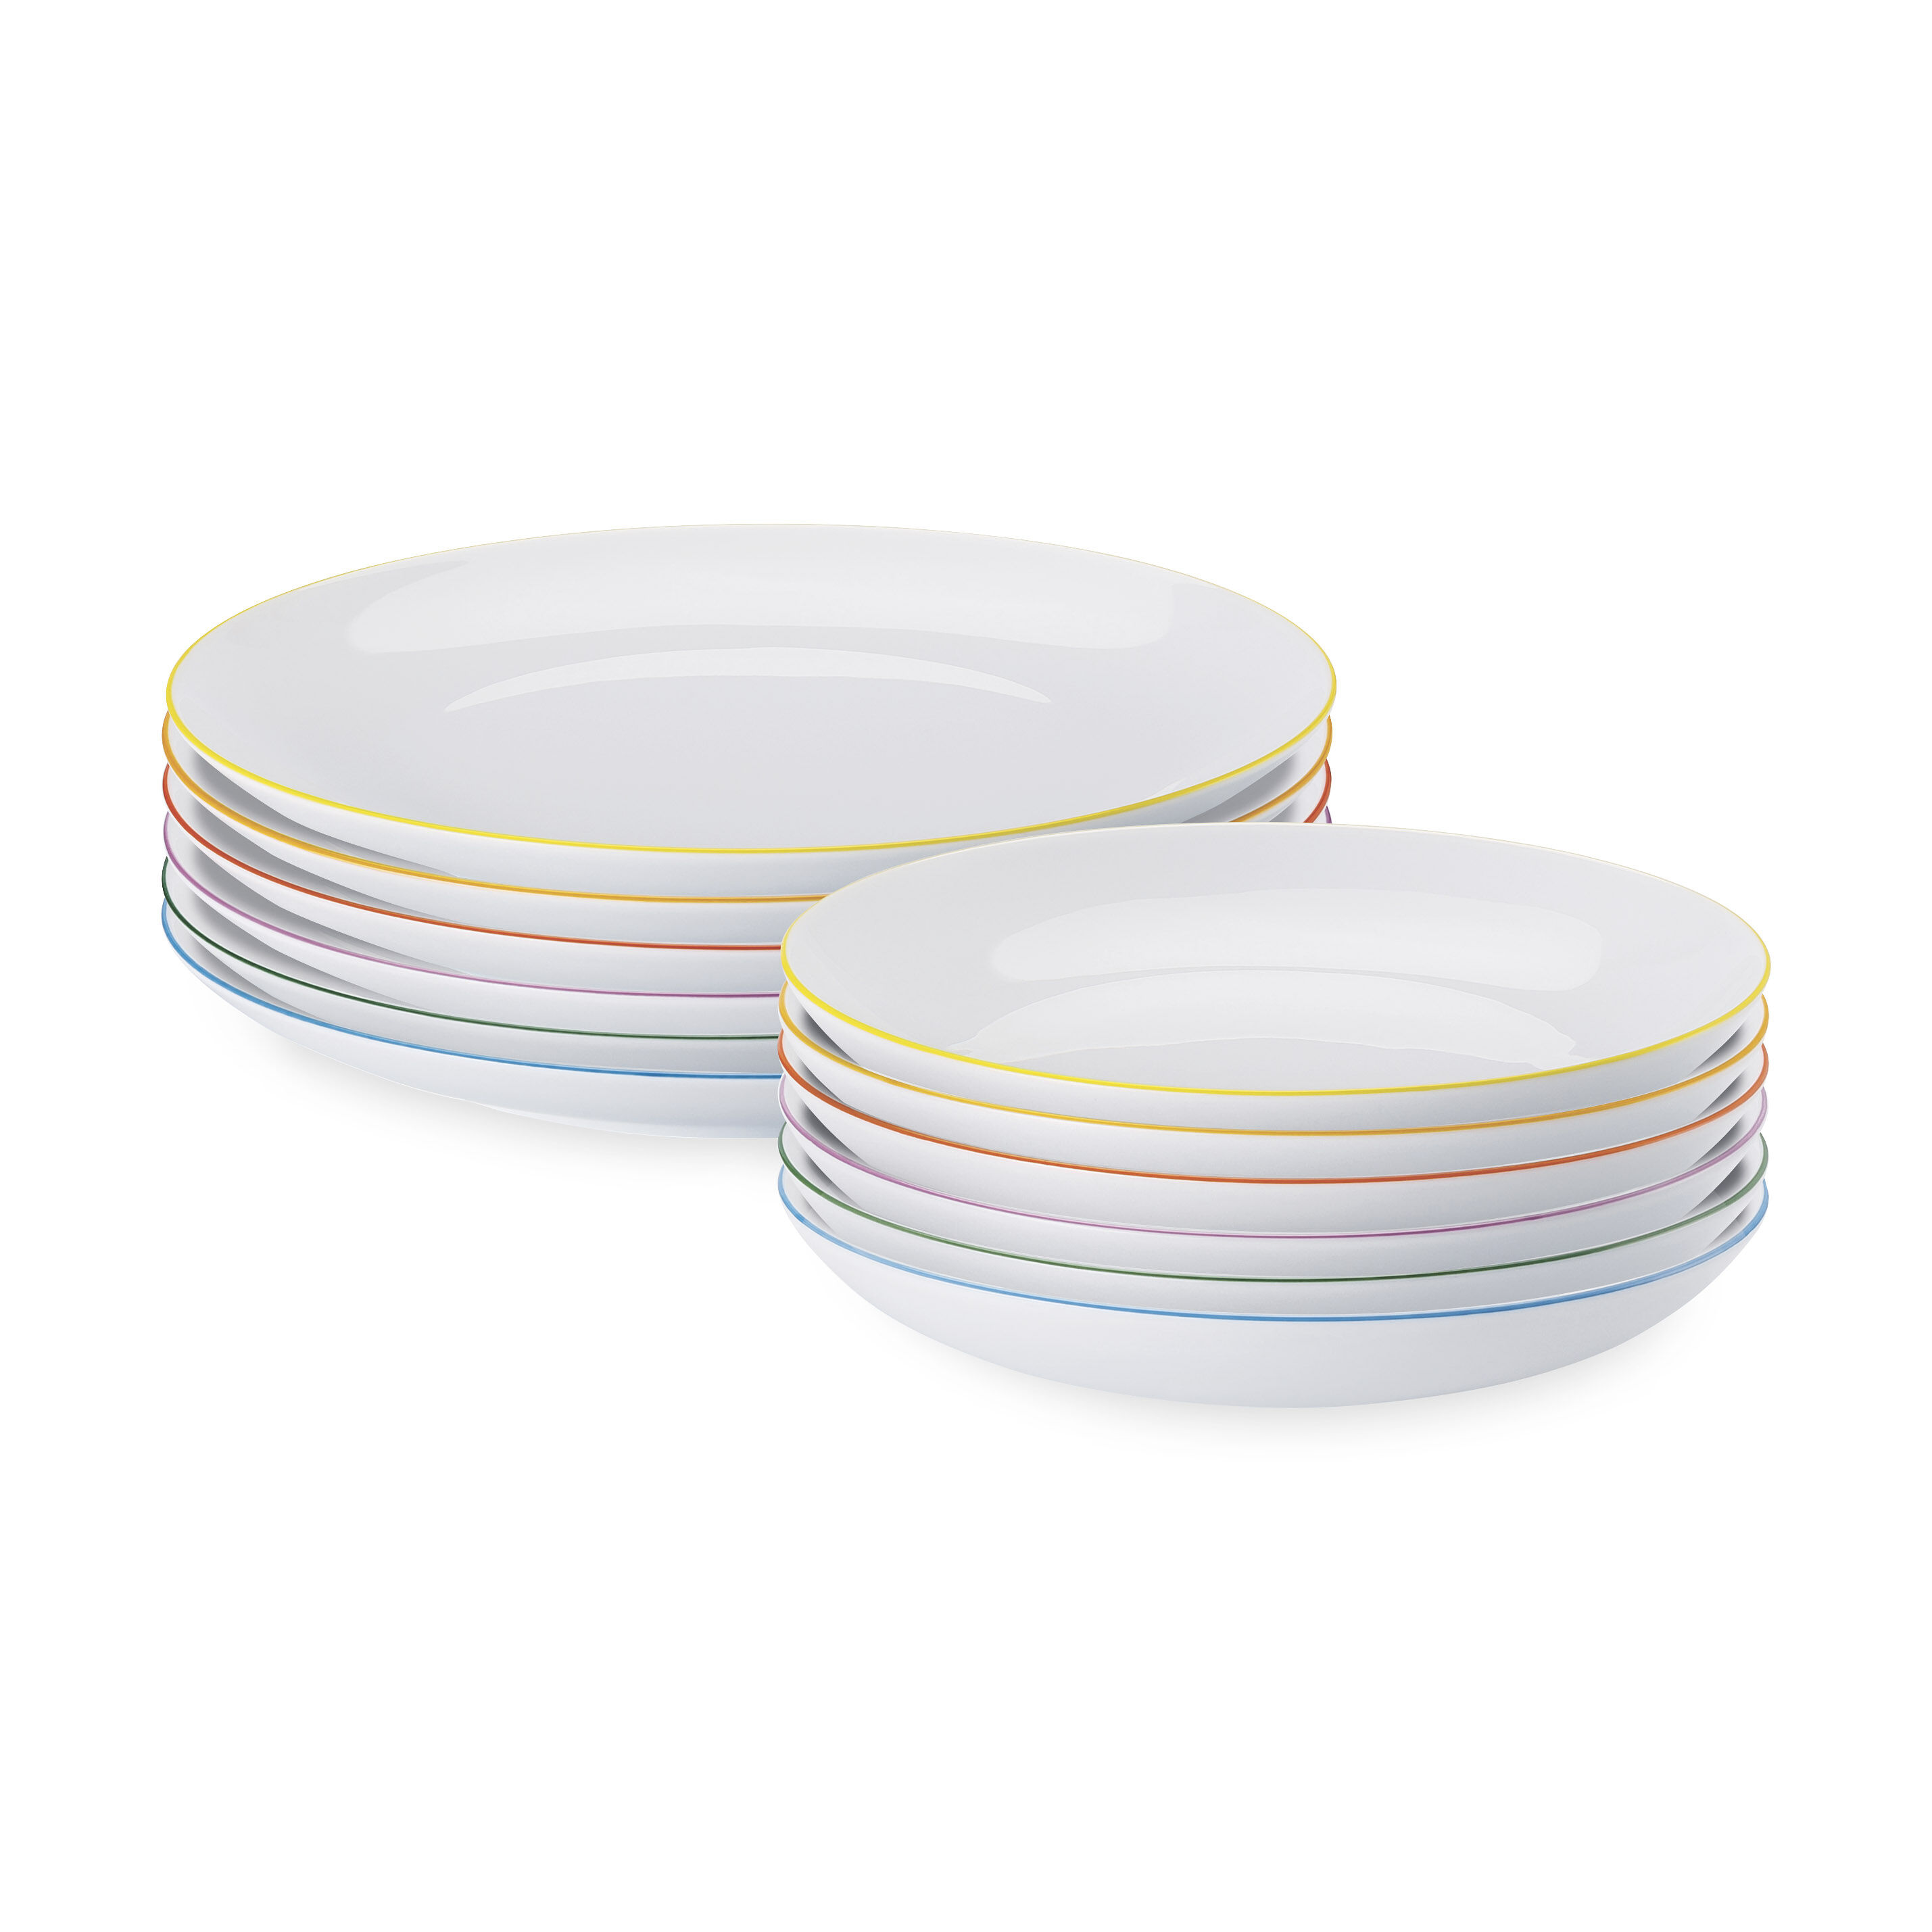 Cucina Colori Dinnerware Plate Set in color  sc 1 st  MoMA Design Store : turquoise plate set - pezcame.com